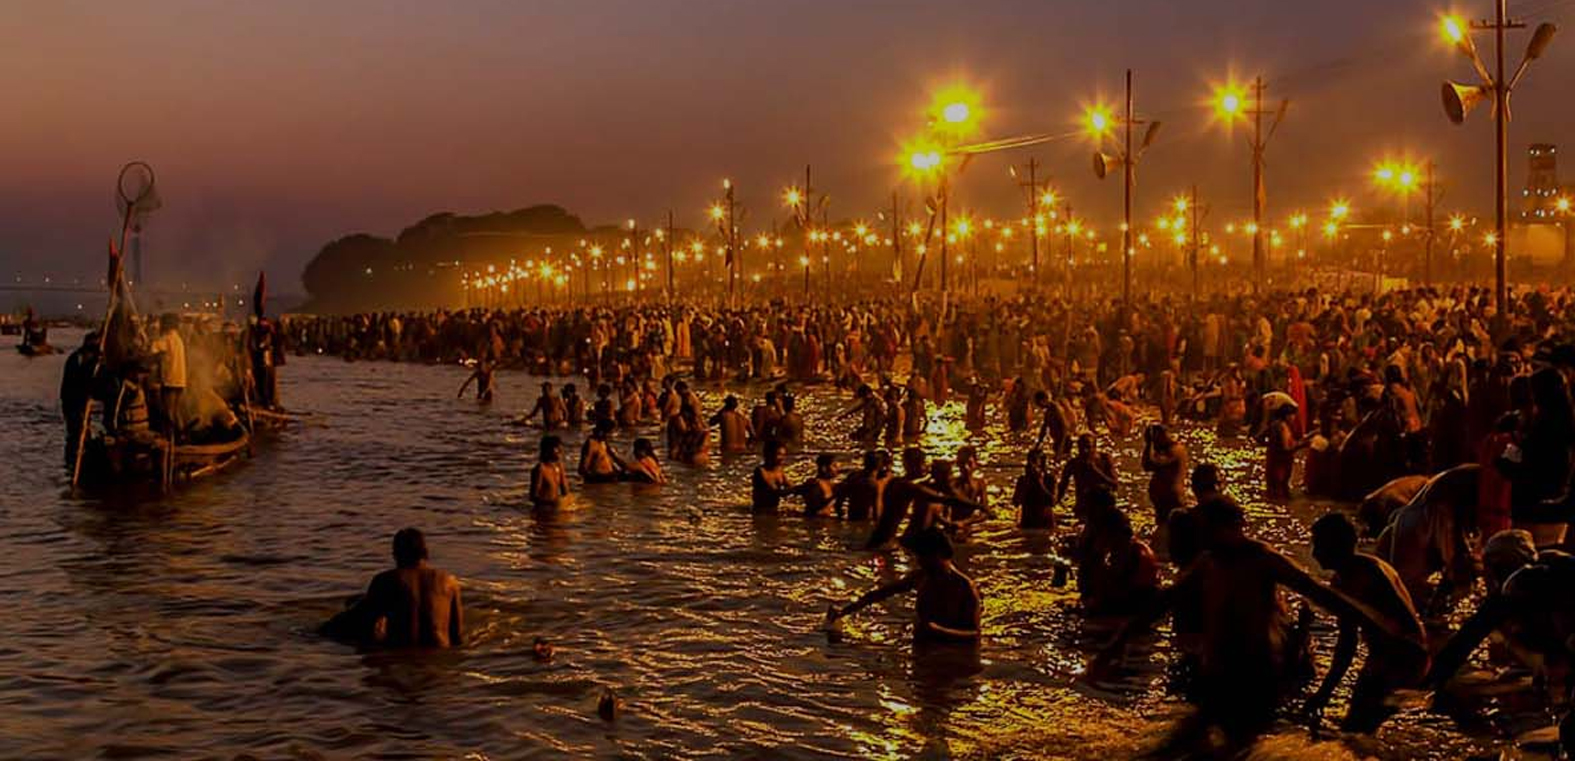 Amazing night experience during Allahabad Kumbh Mela